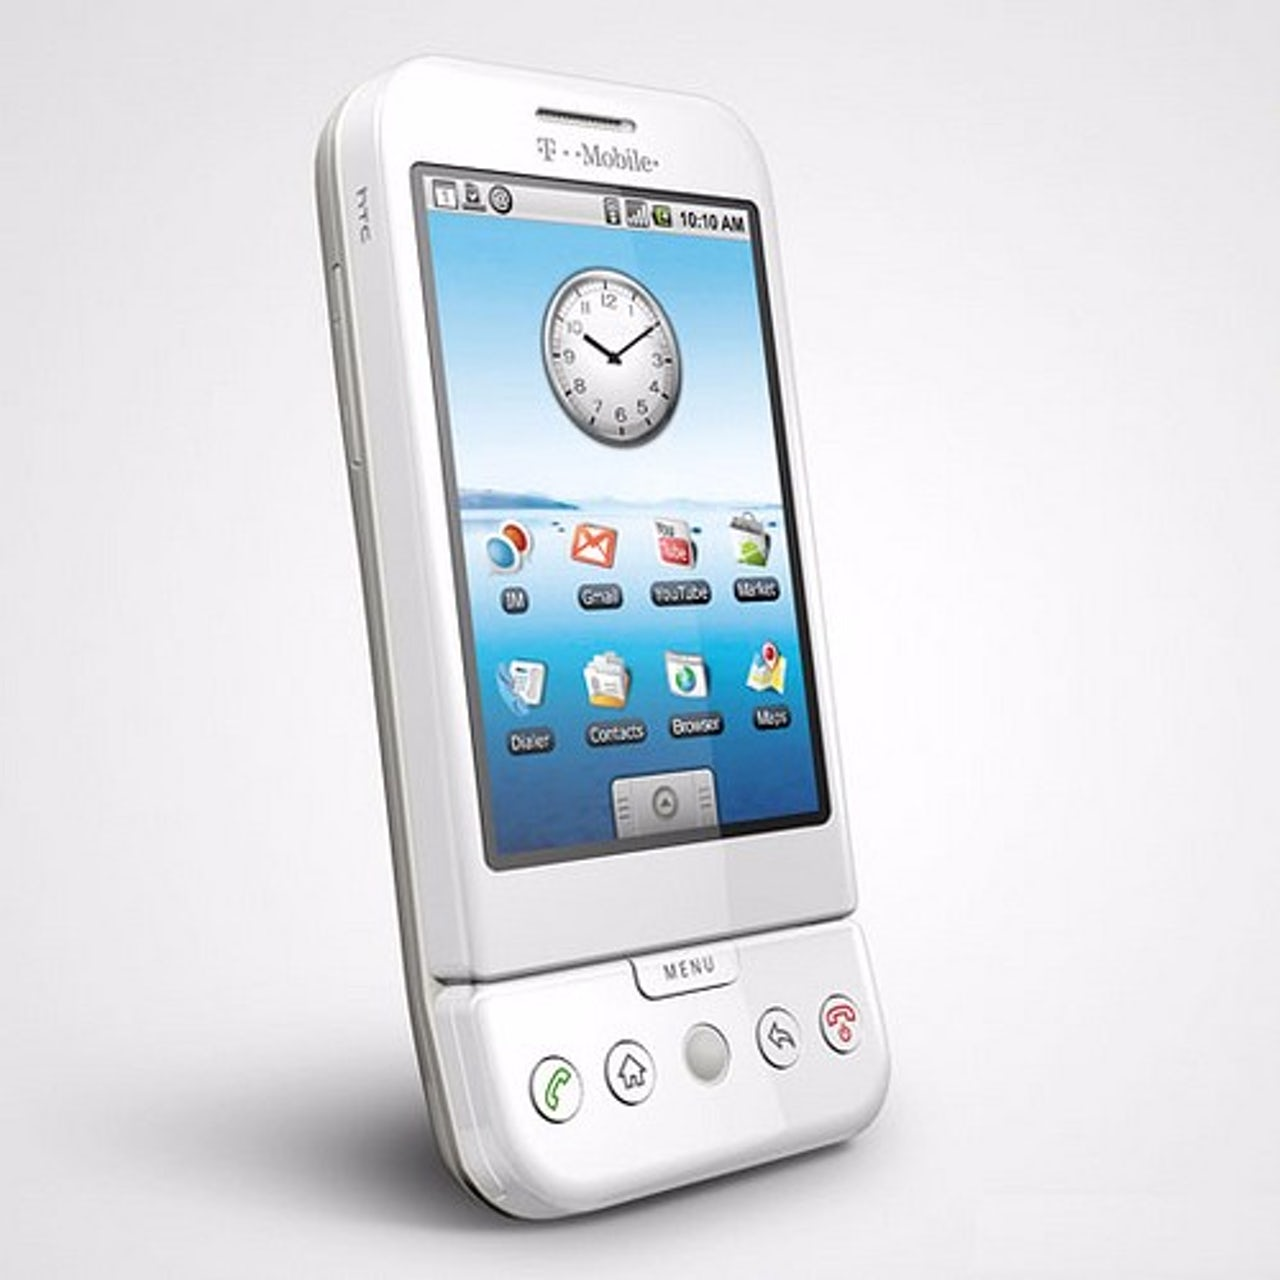 Remember this thing? It's the G1, the first Android phone, produced in partnership with HTC.